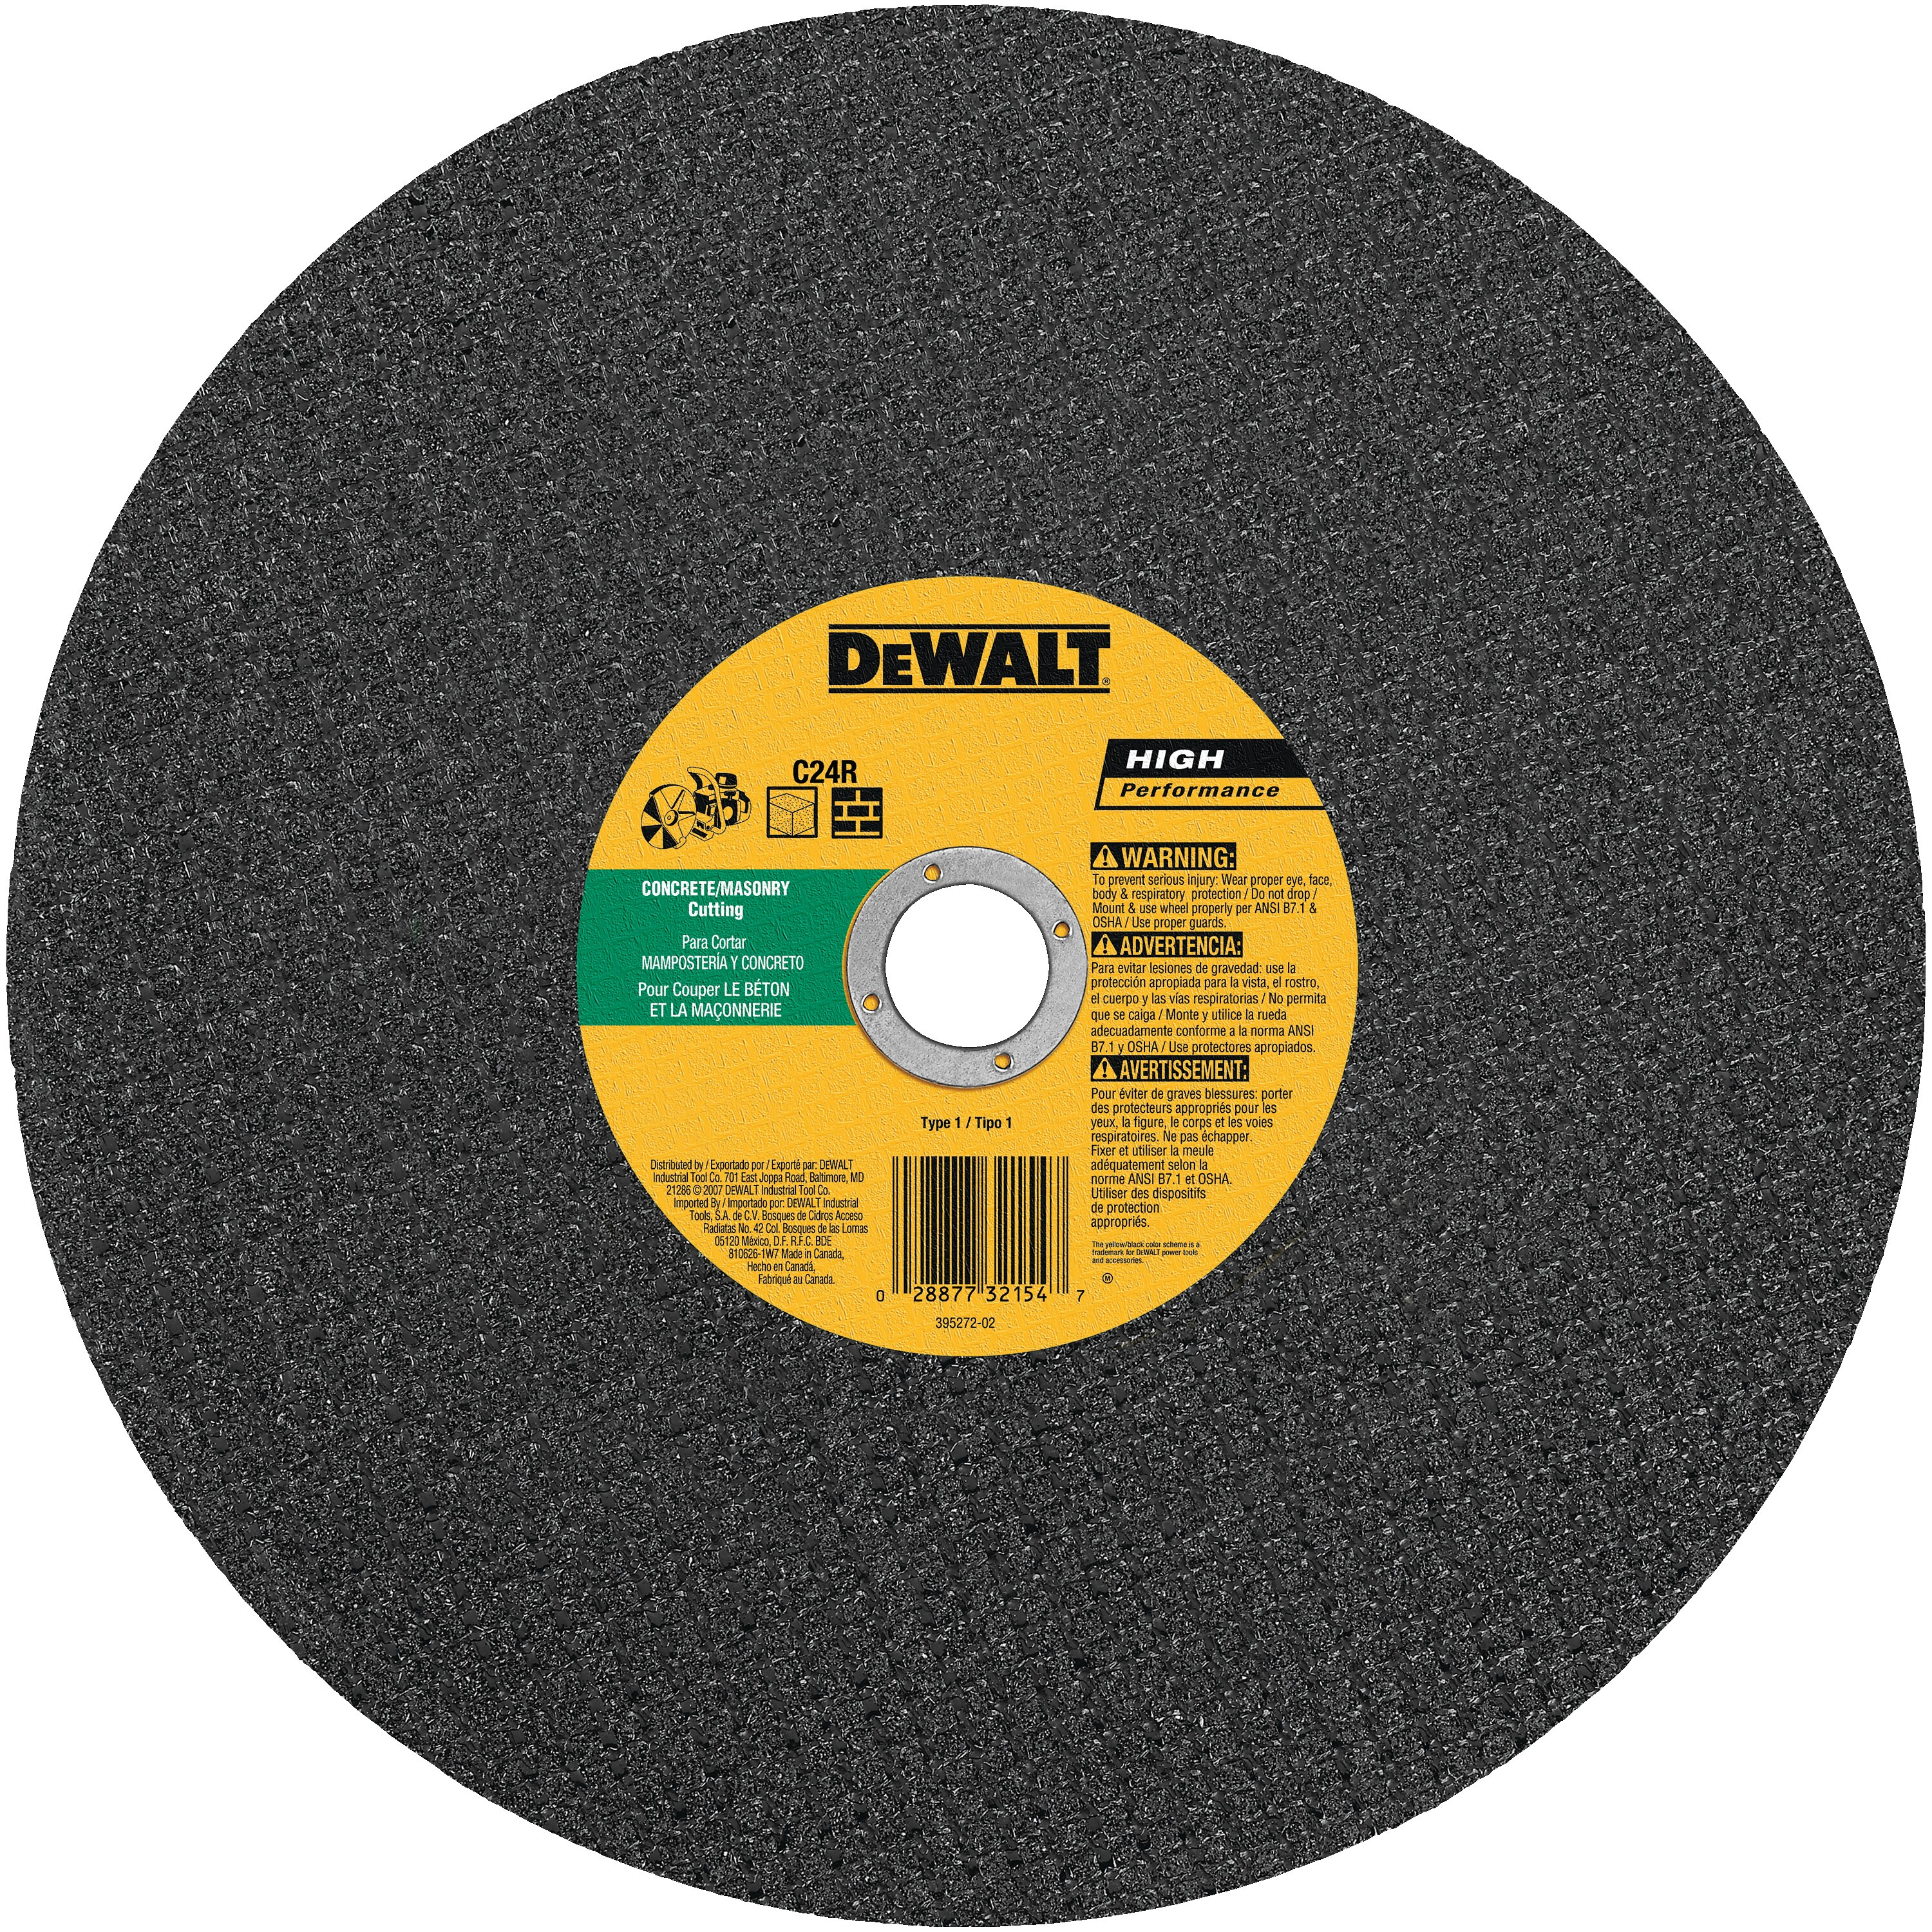 "DeWalt DW8026 12/"" x 1//8/"" x 1/"" Concrete//Masonry High Speed Cut-Off Wheel"